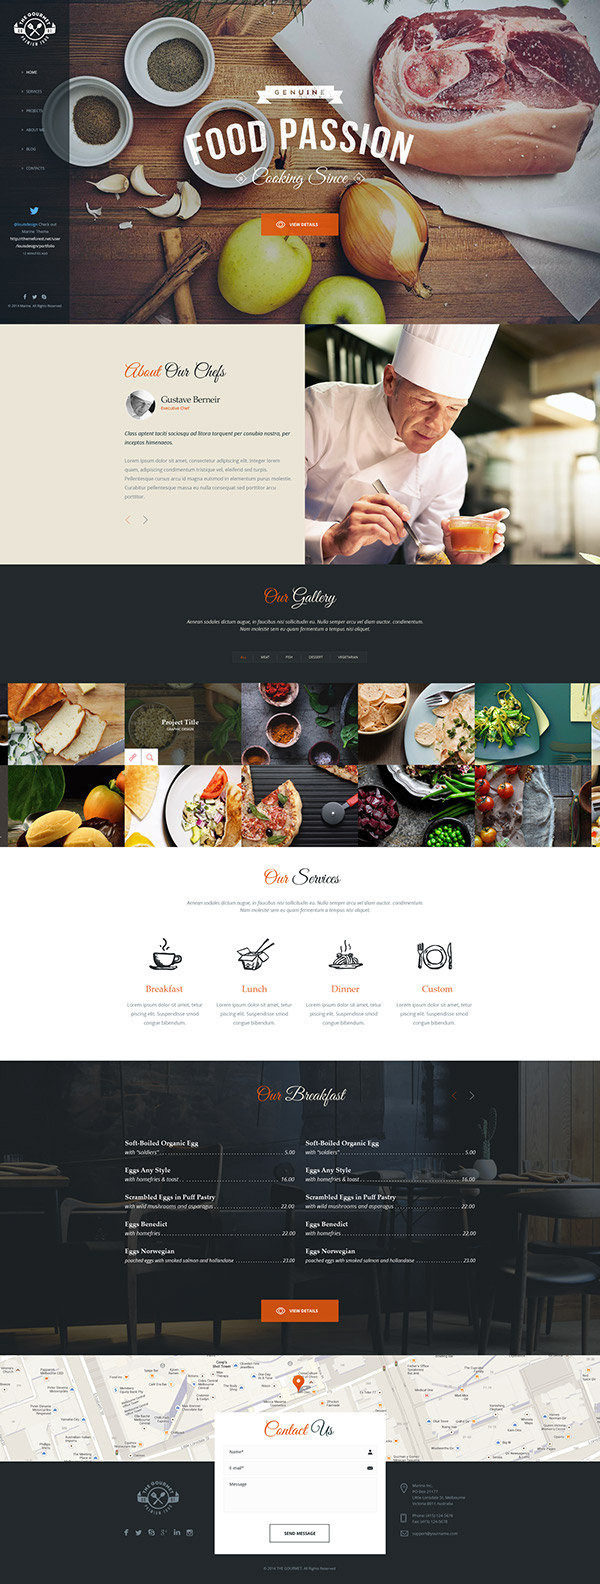 The Gourmet – Food WP Skin & Theme #inspiration #design #web #resturant